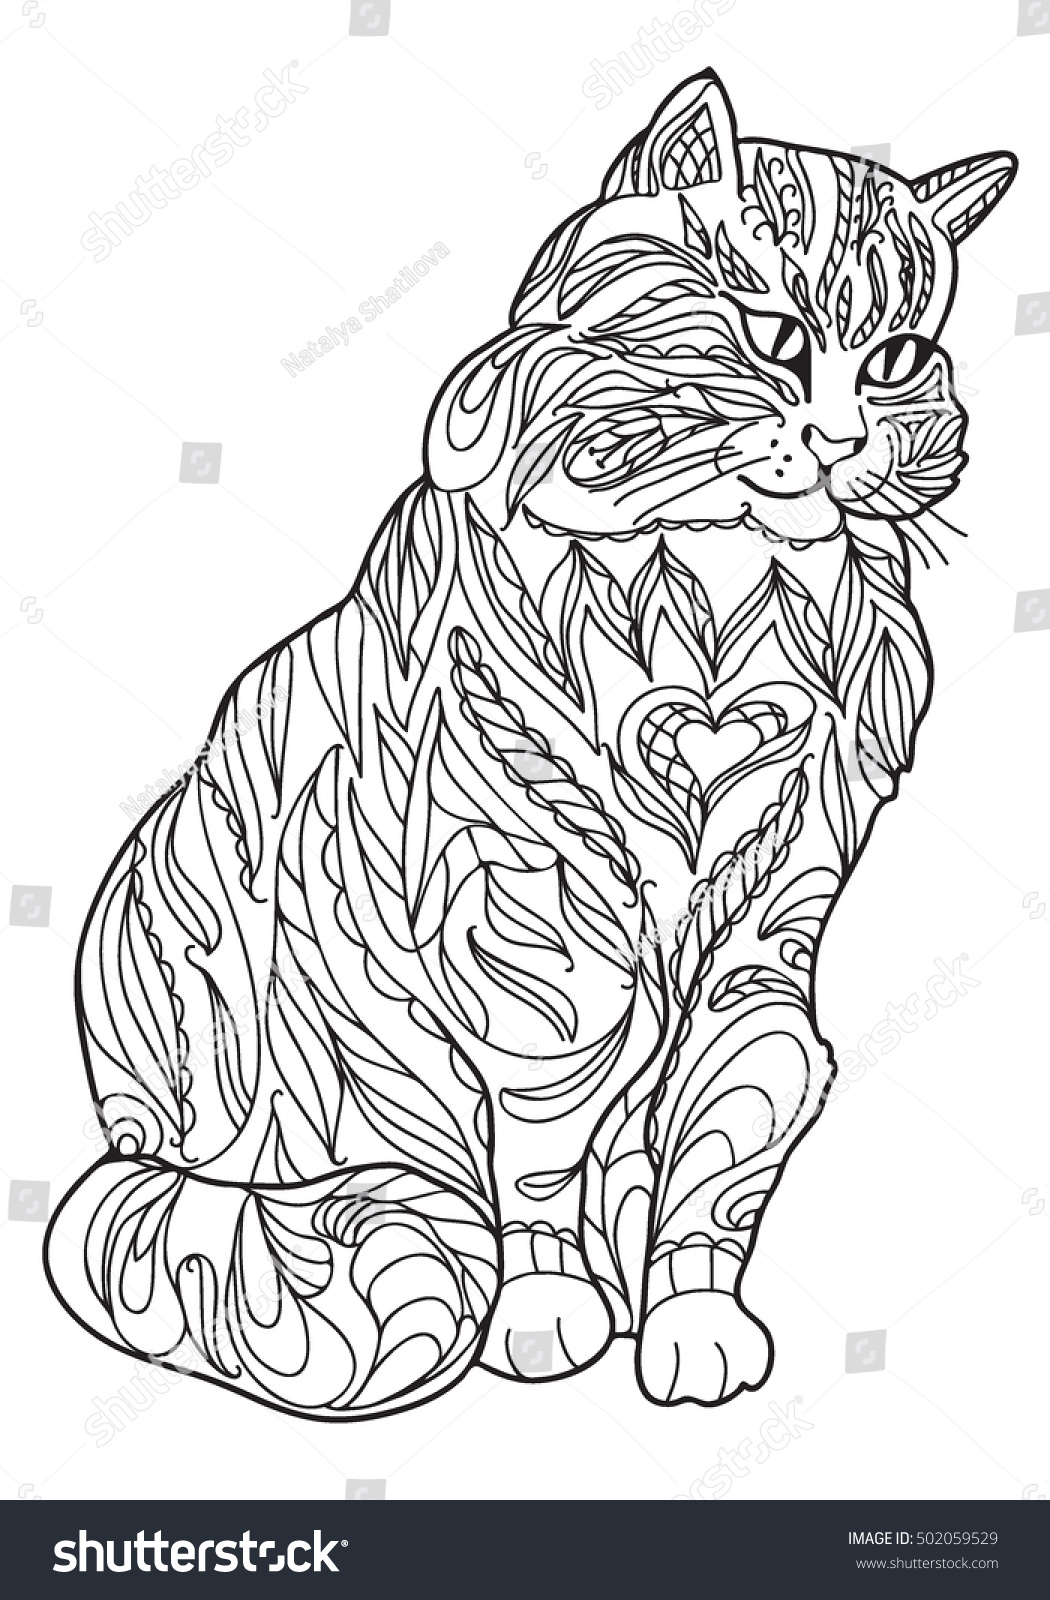 Coloring Book Hand Drawn Adults Black And White Cat In Zentangle Style